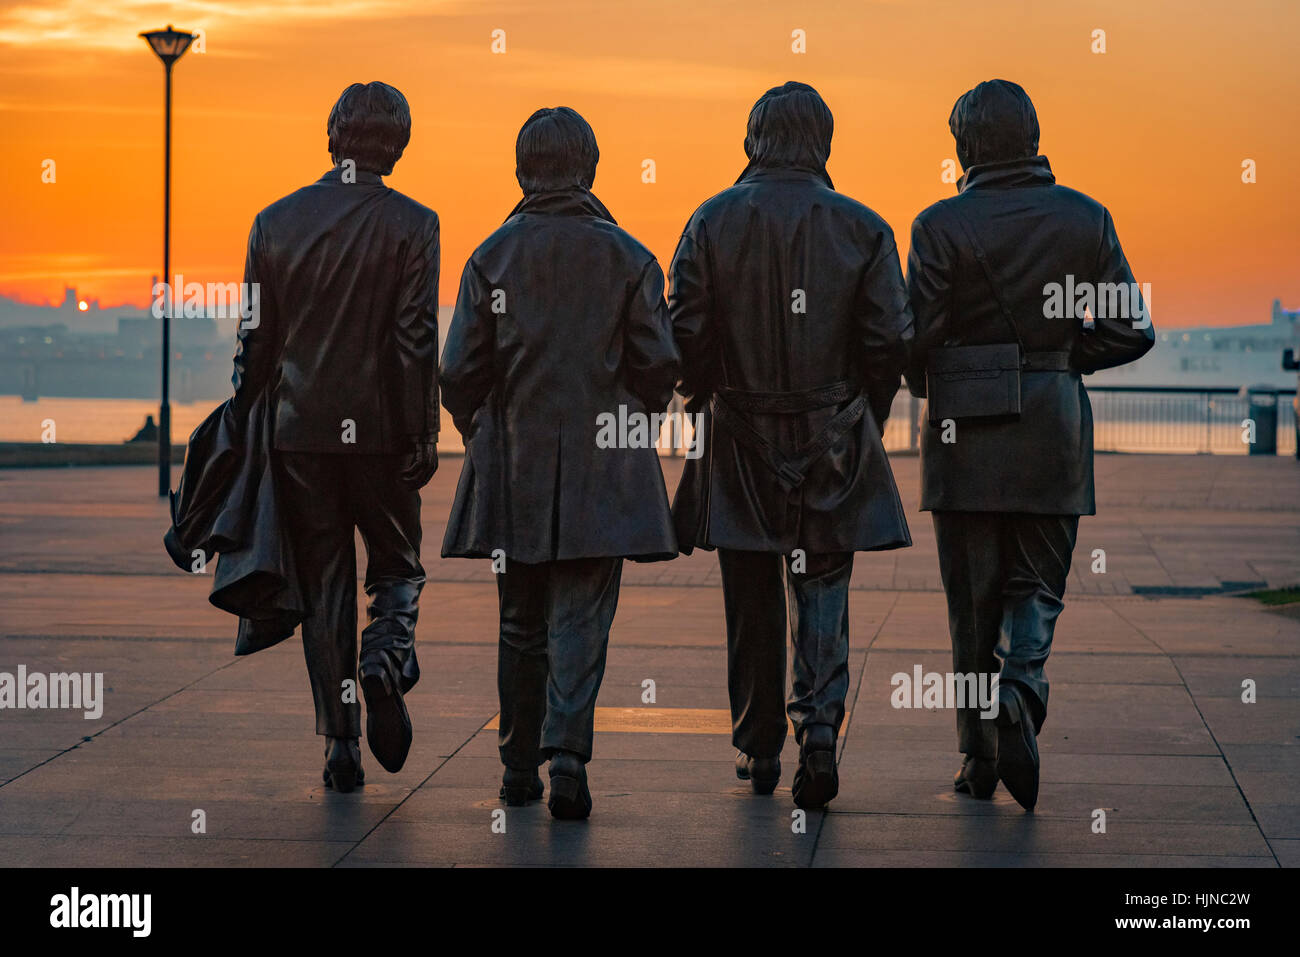 Statue of the Beatles or Fab Four at Liverpool pierhead in the evening sun. - Stock Image